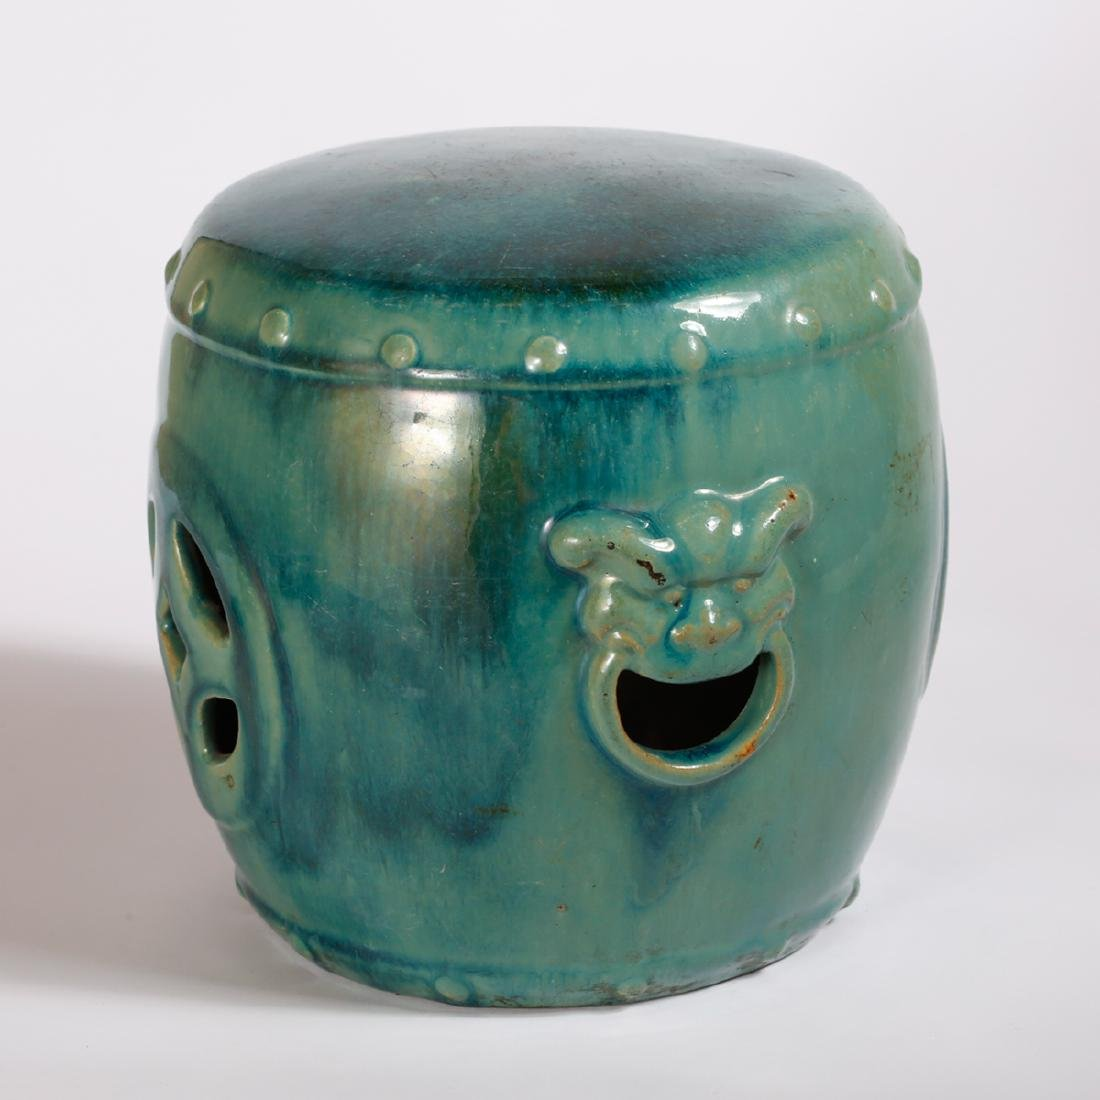 CHINESE TURQUOISE GLAZED PORCELAIN STOOL - 2